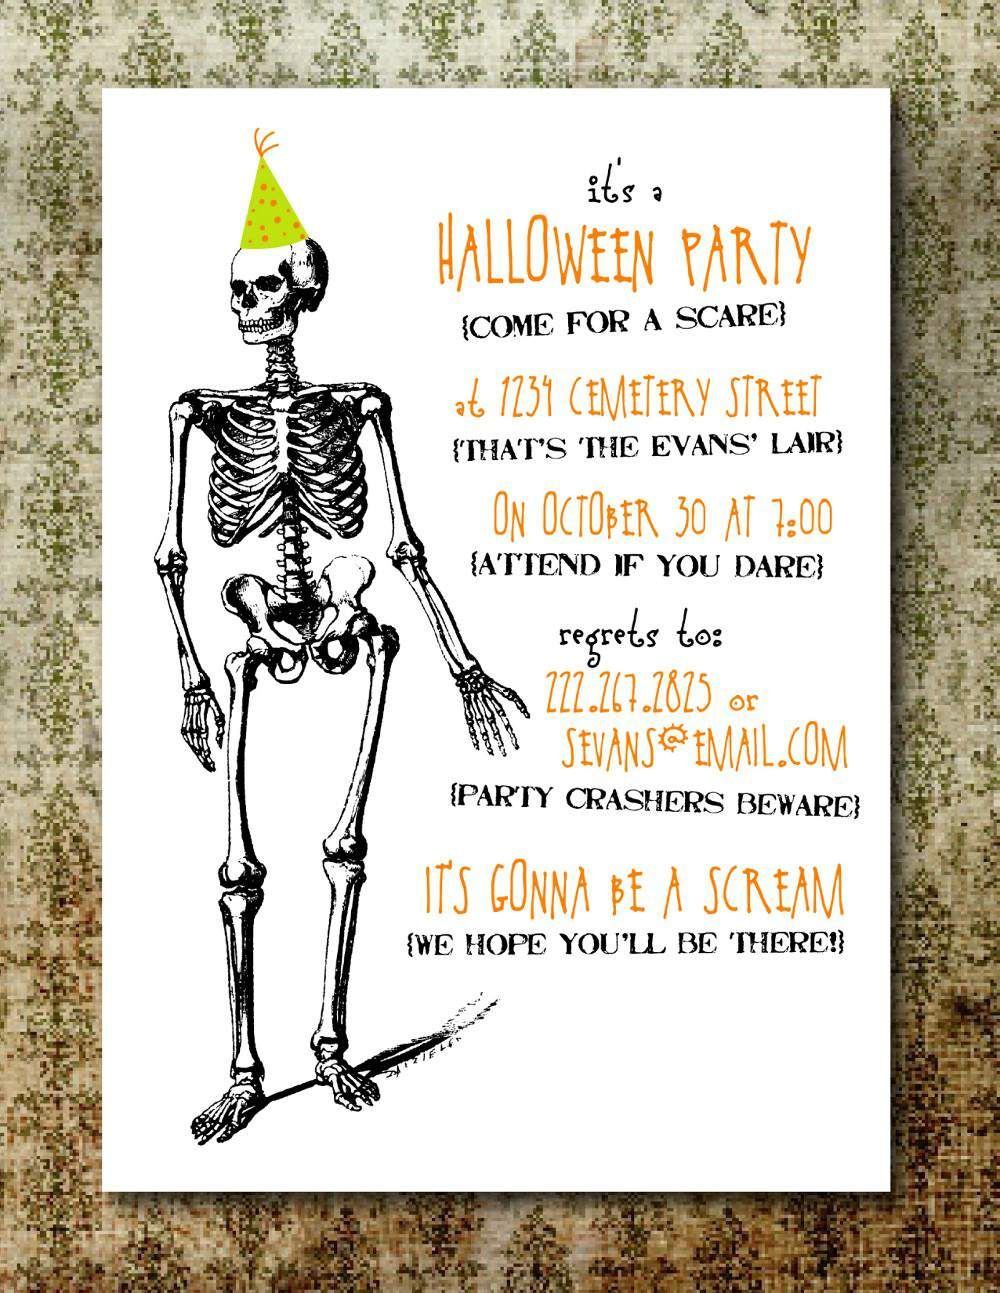 Free Printable Halloween Invitation Templates | Free Printable - Halloween Party Invitation Templates Free Printable